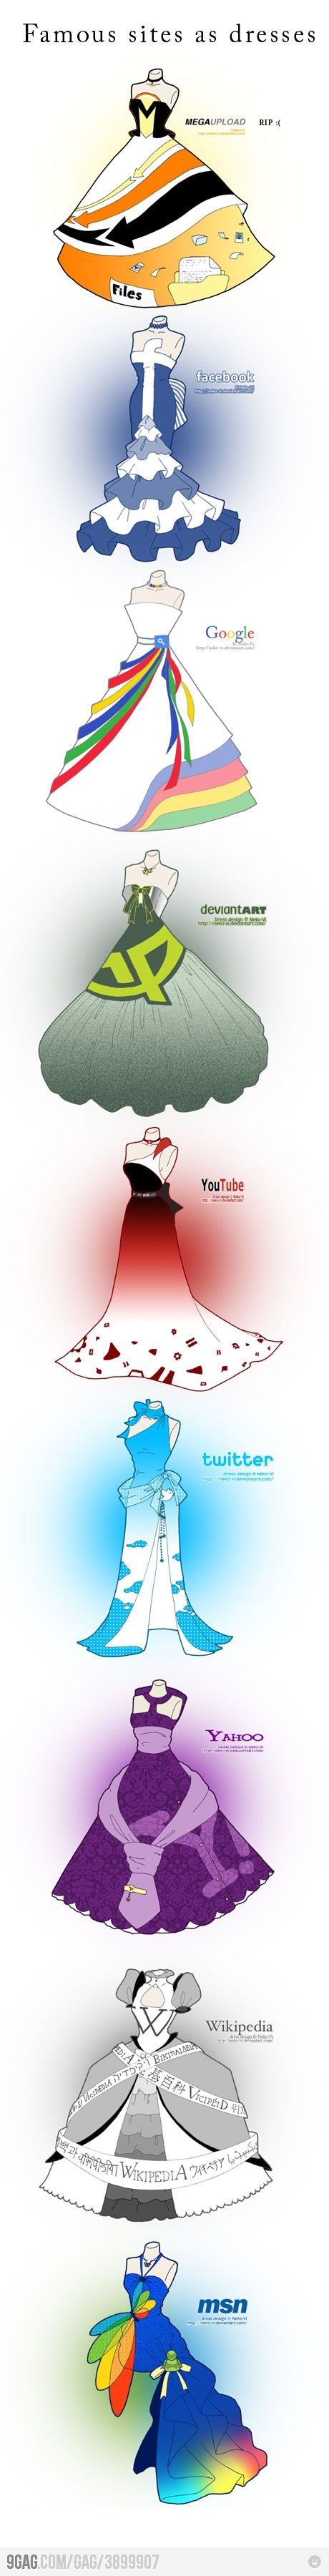 I wish the Facebook dress was real, I would find a reason to wear it.